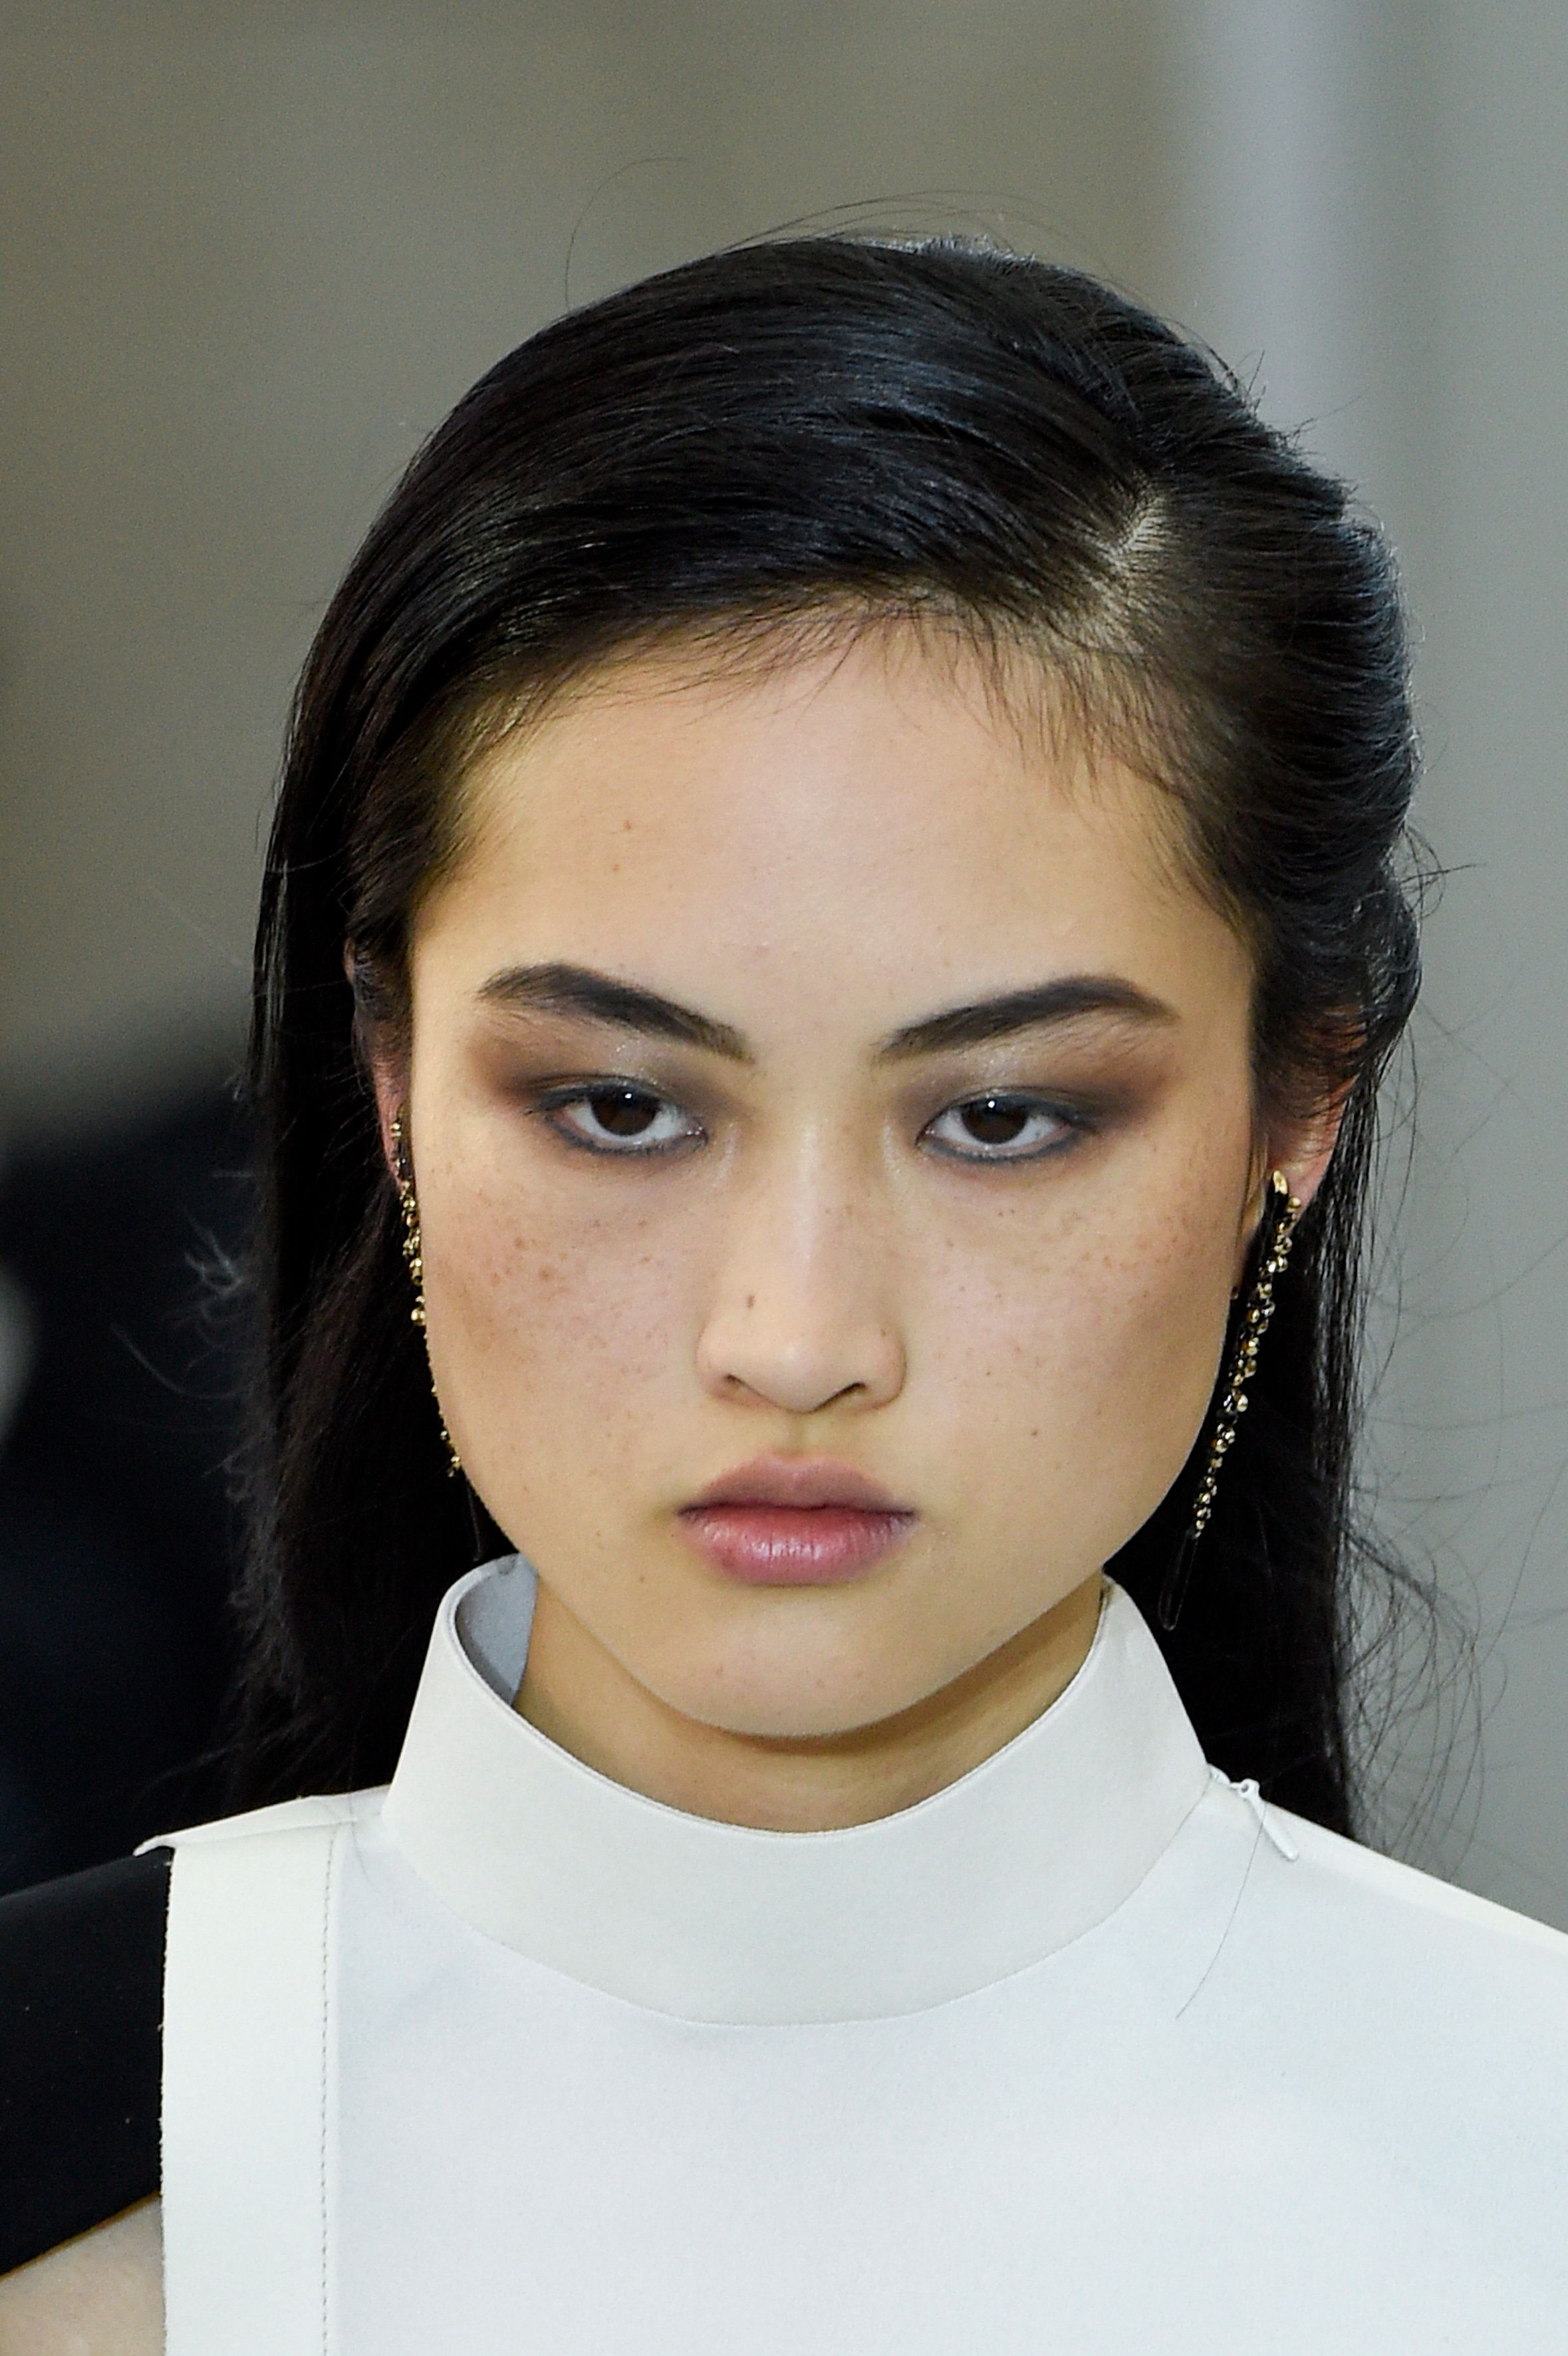 China Social Media Erupts Over A Top Model's Freckles In Surprise